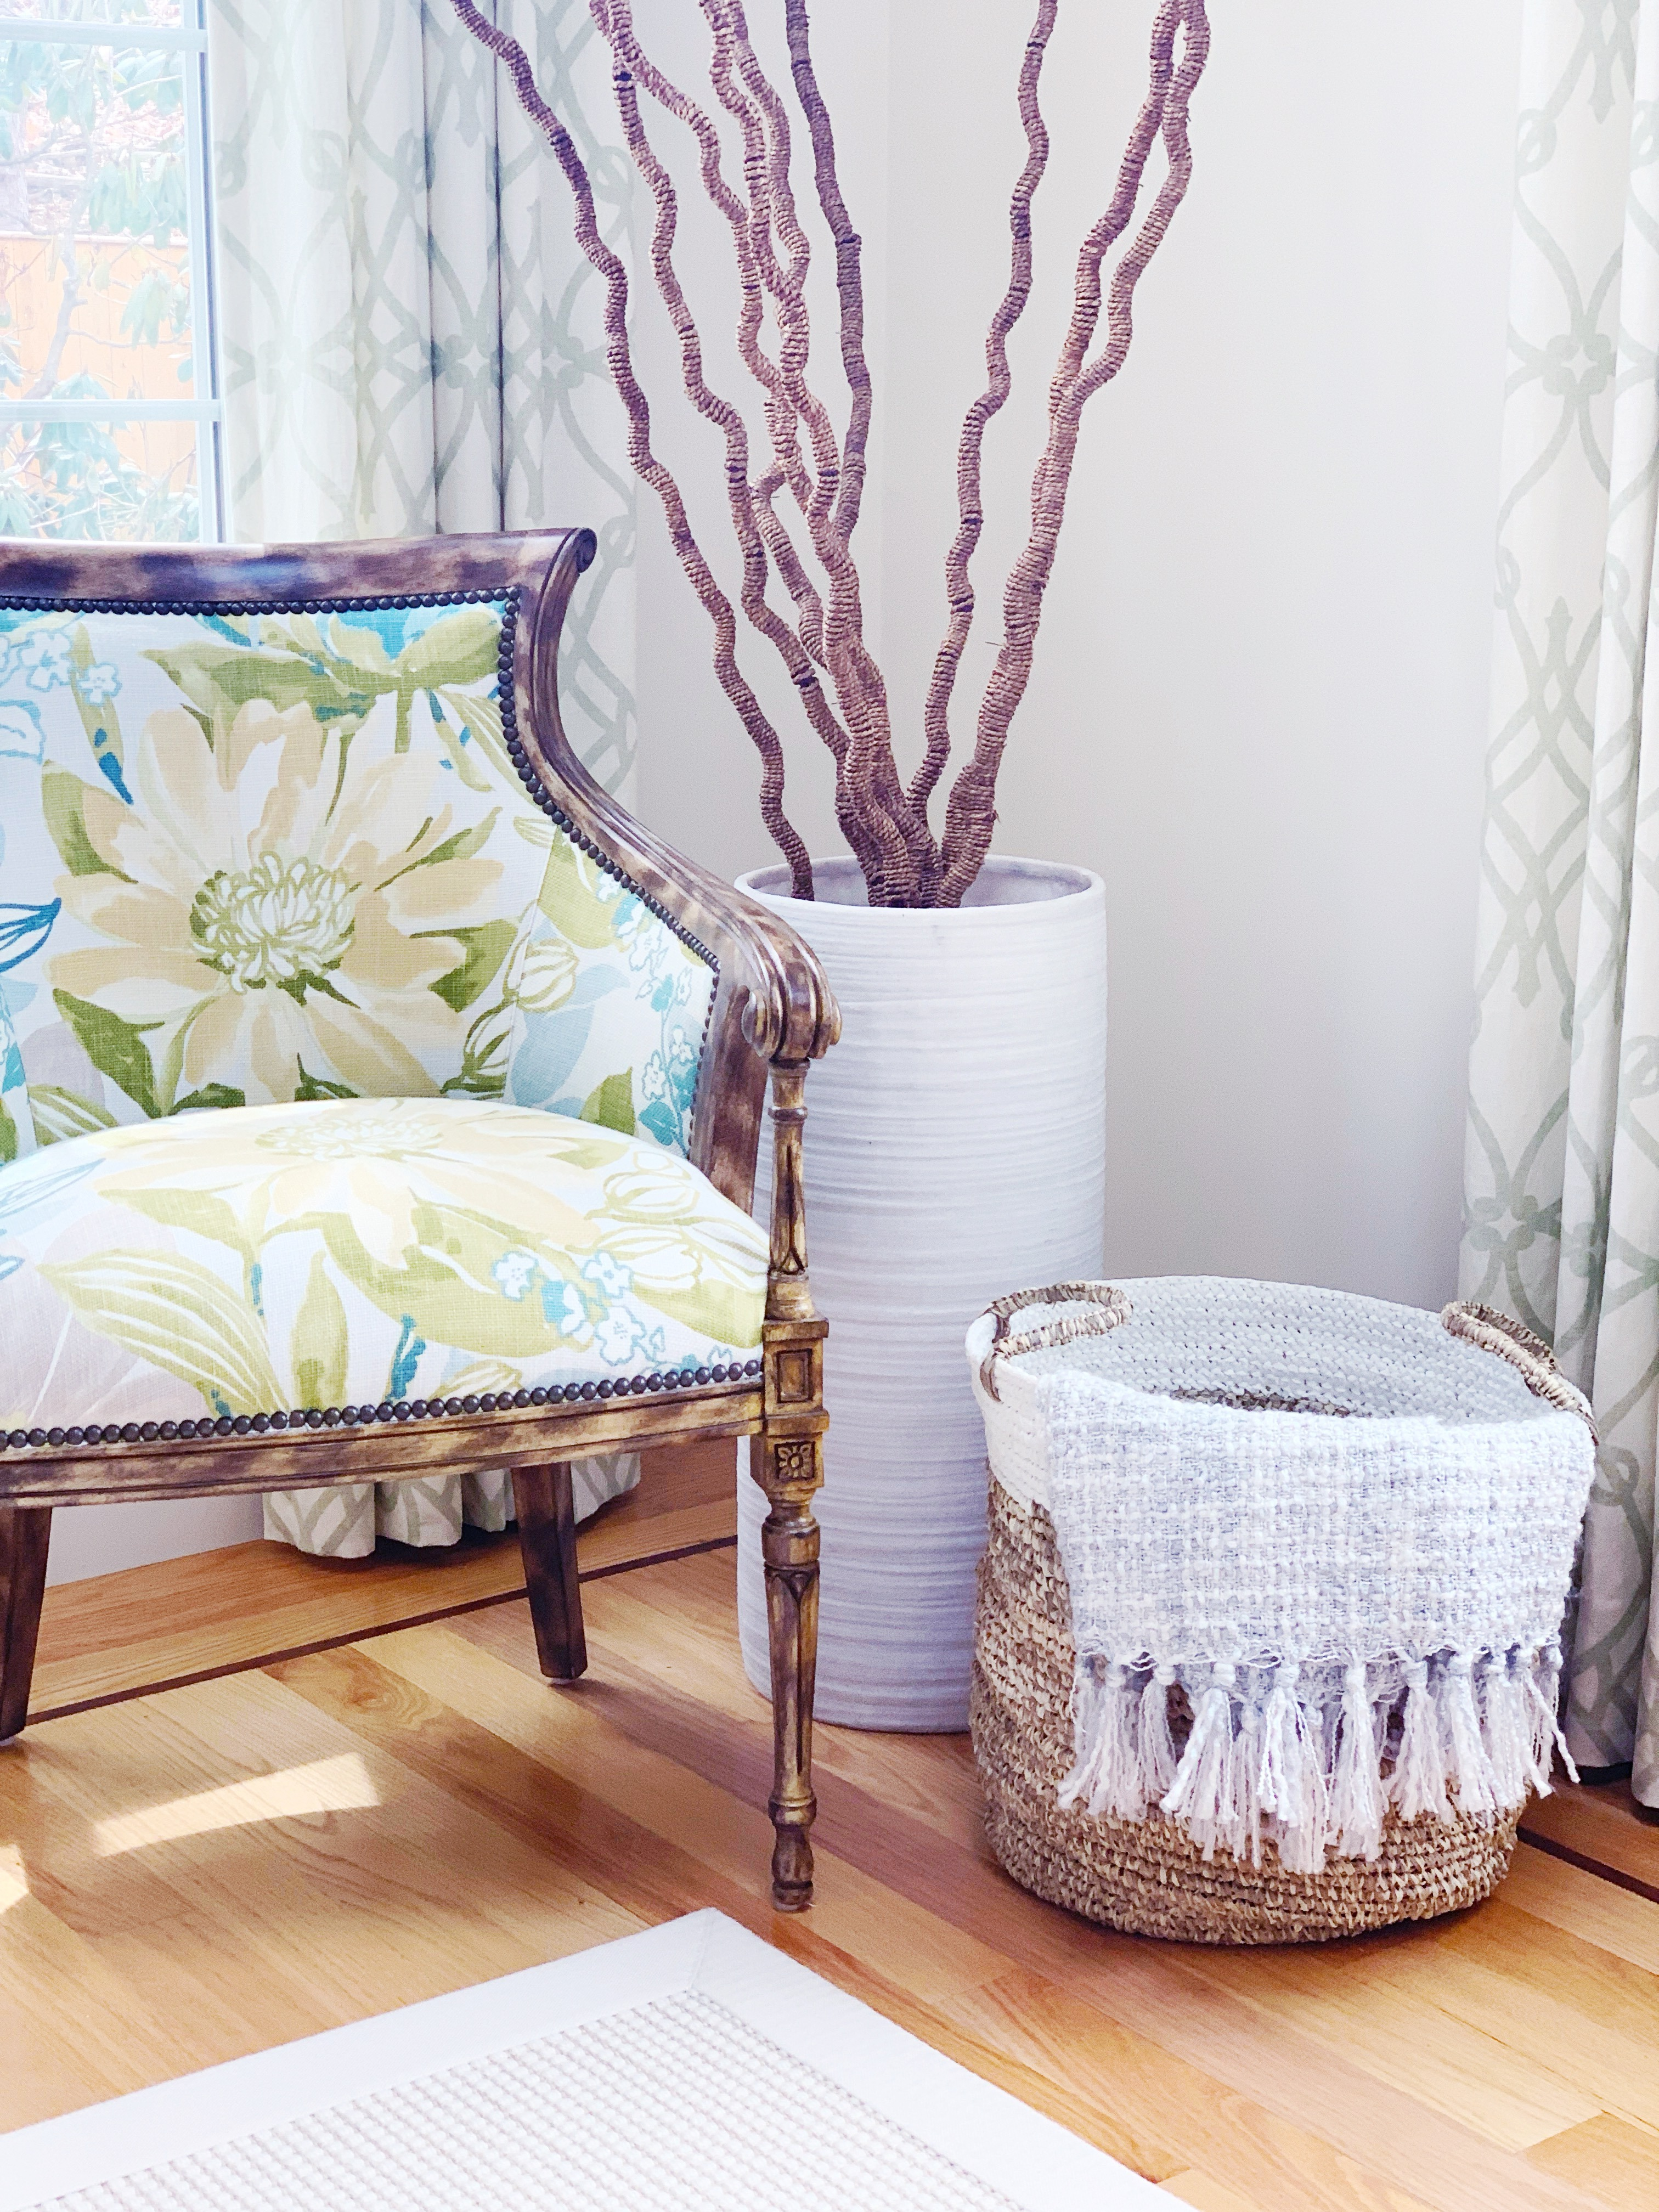 Reading corner in a bedroom with a floral chair and basket on the floor